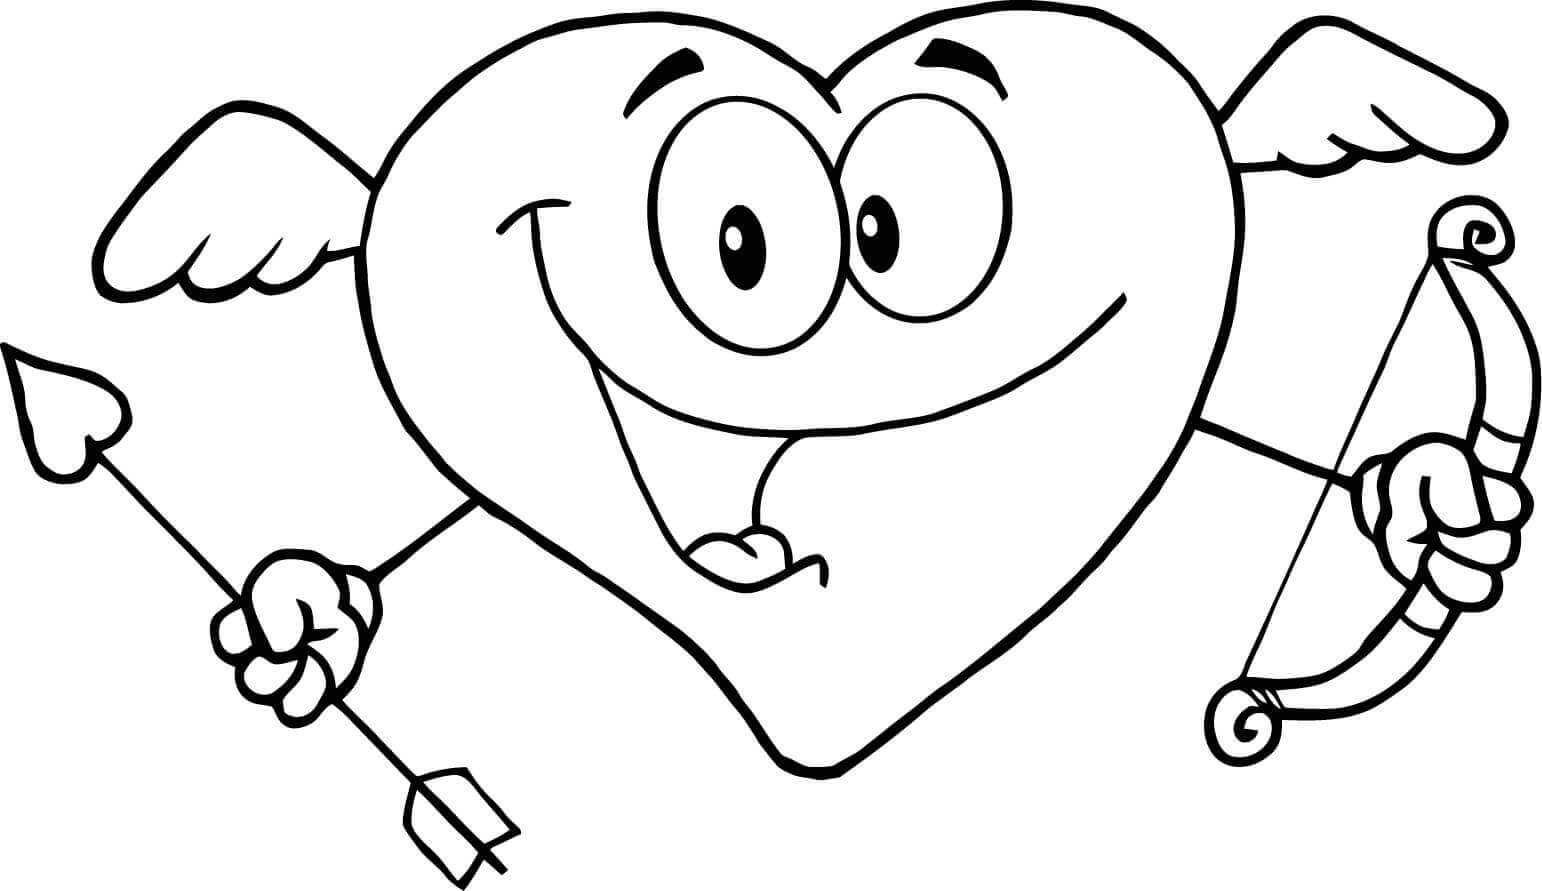 cute heart coloring pages heart coloring pages printable coloring home pages cute heart coloring